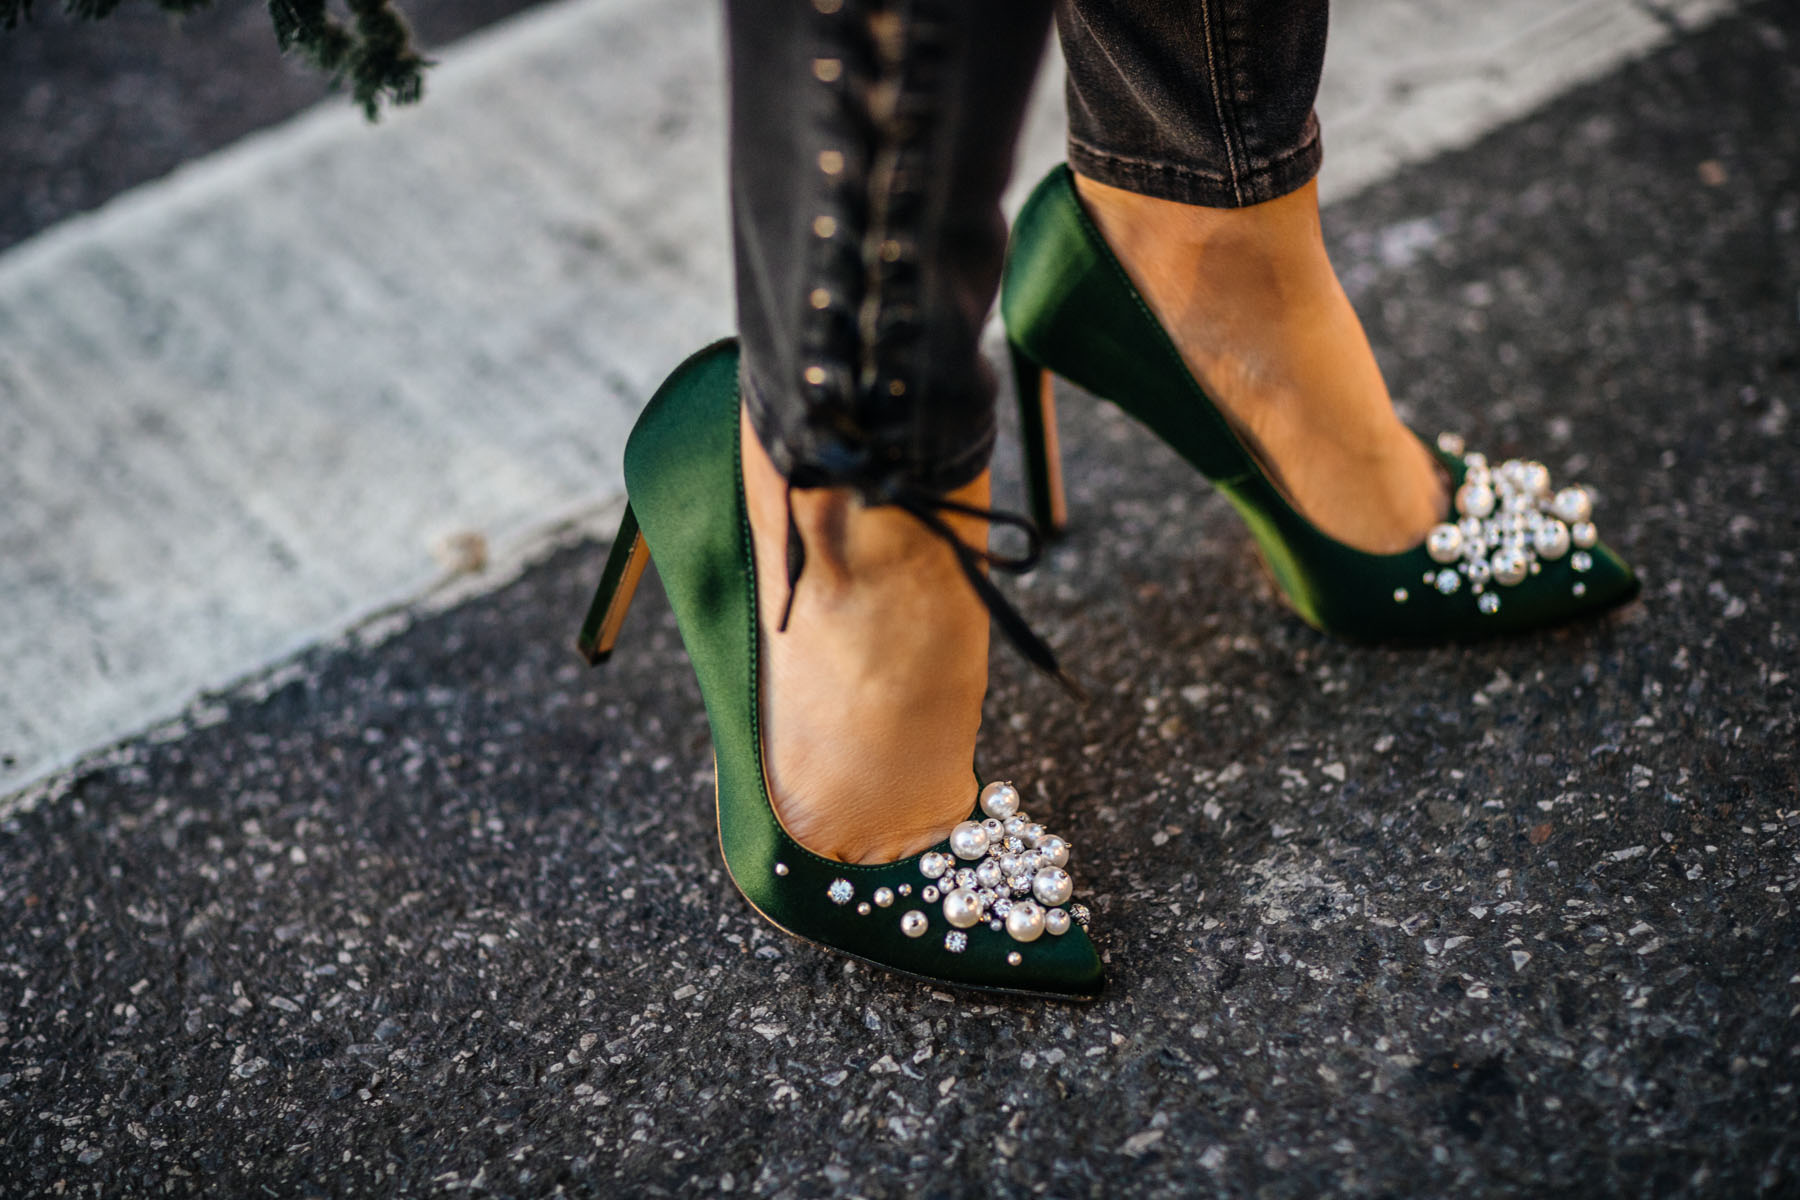 Fashion Details to Elevate Your Favorite Basics - green satin pumps, satin heels, embellished pumps // Notjessfashion // Jessica wang, winter outfits, stylish winter outfit, fashion blogger, street style, winter street style, green satin pumps, nine west heels, fringe details, asian blogger, salar bag, green outfits, shoe trends